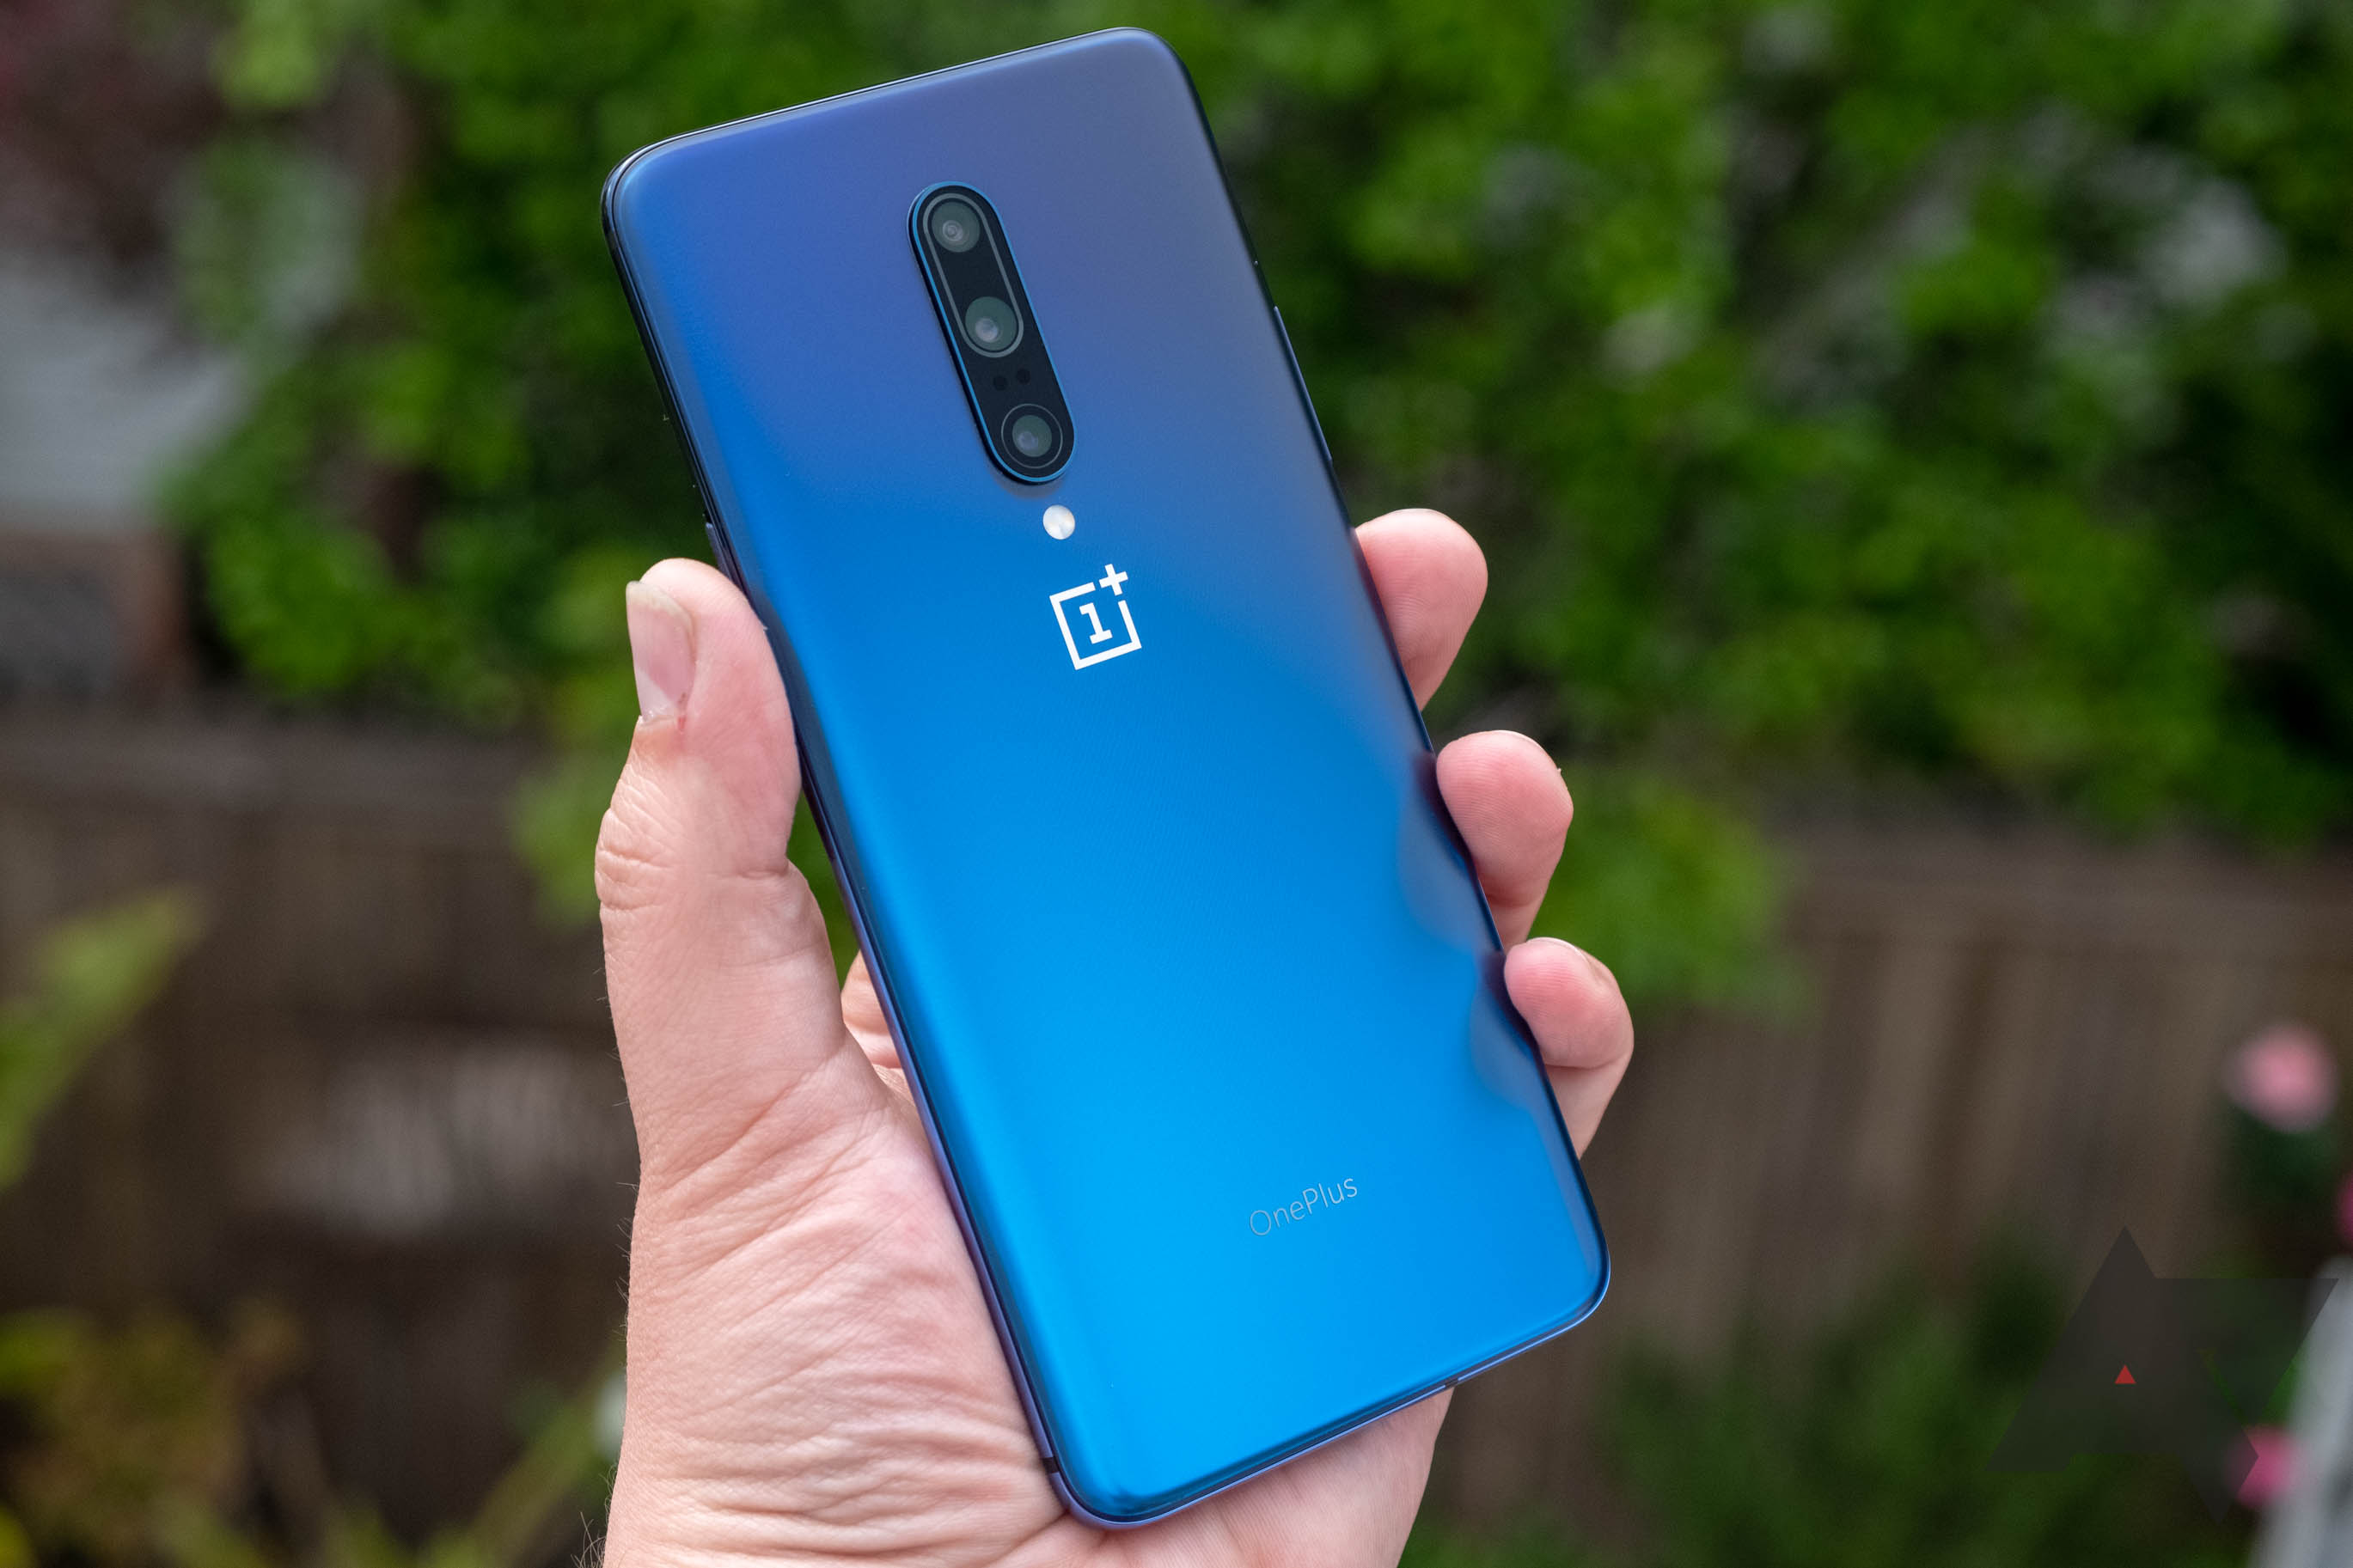 OnePlus 7 Pro Smartphone: Launch Date, Availability, And Price List!